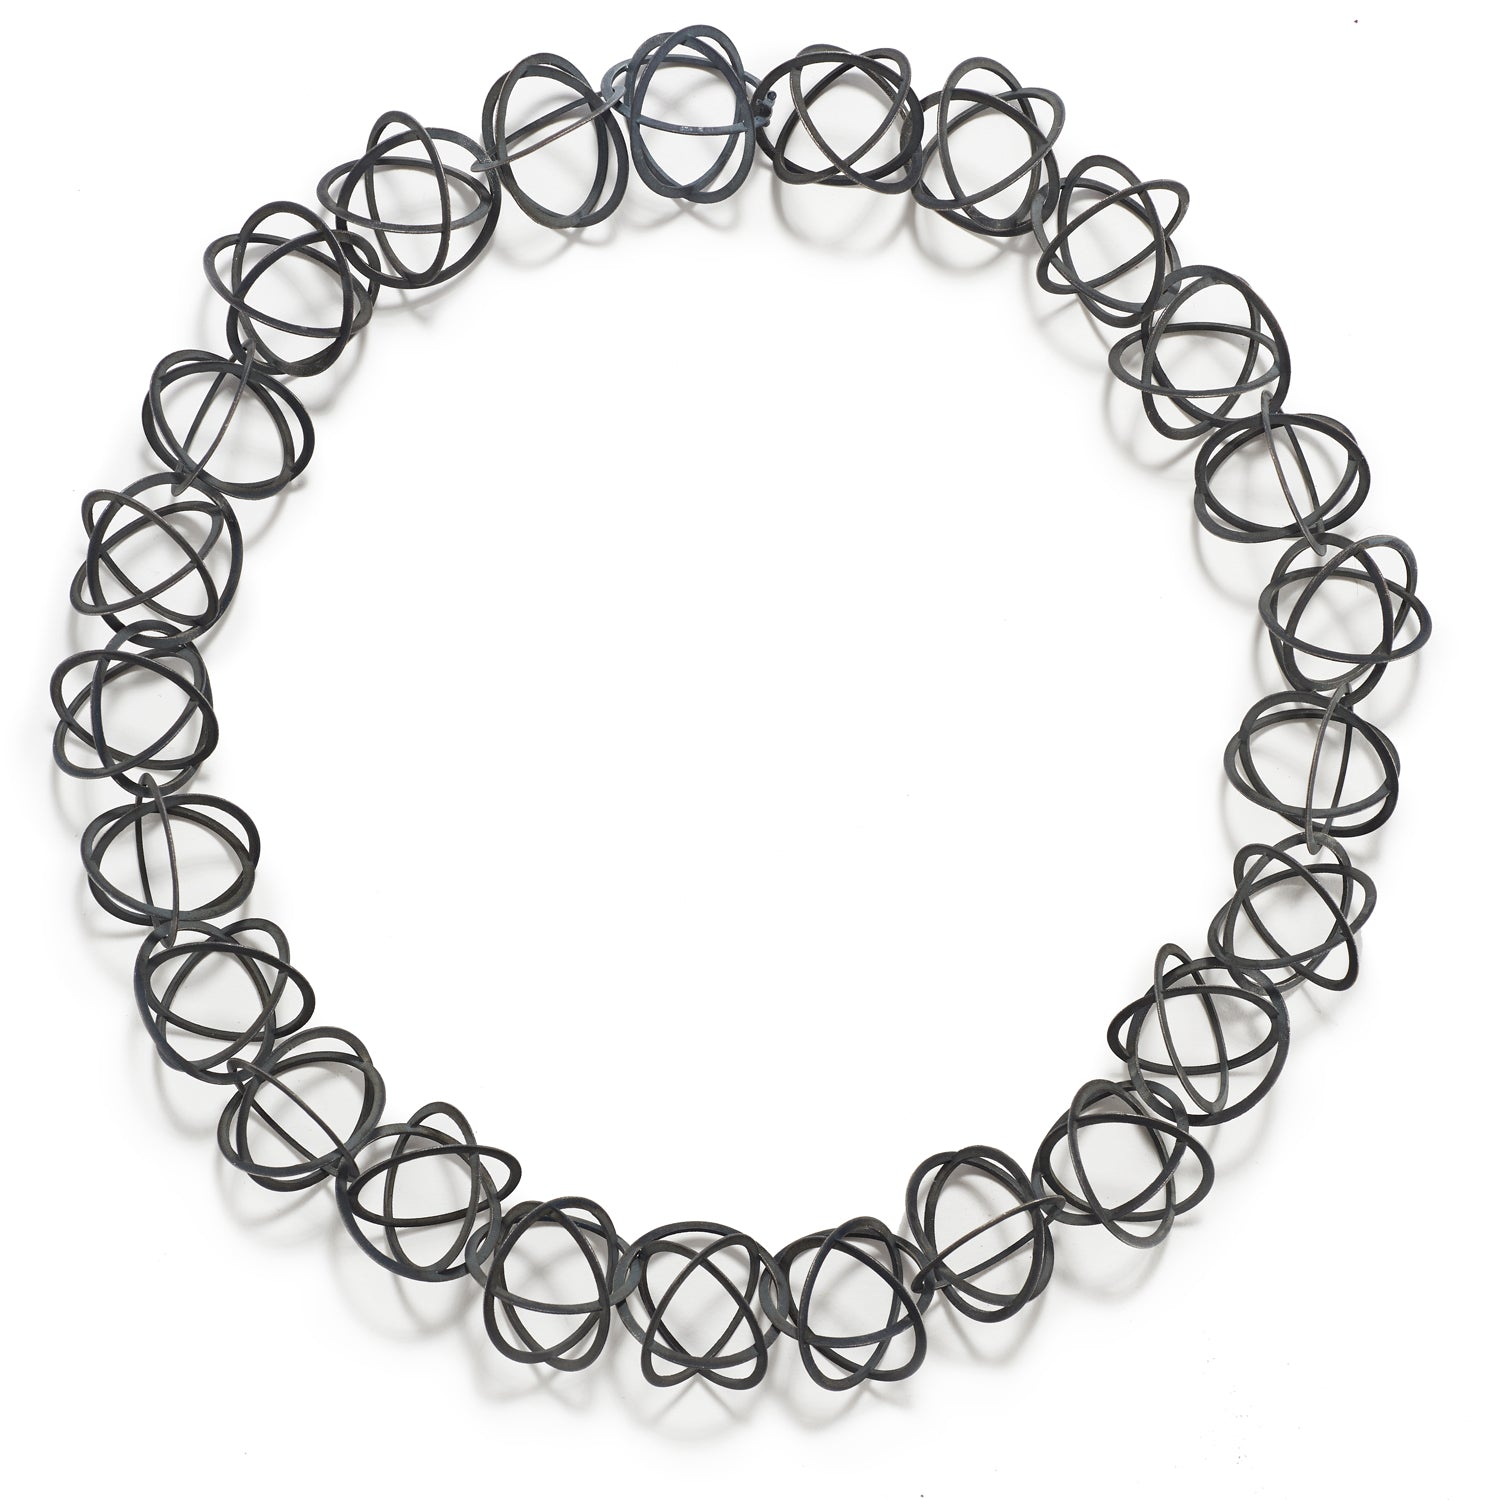 Blackened Silver Orbit Chain